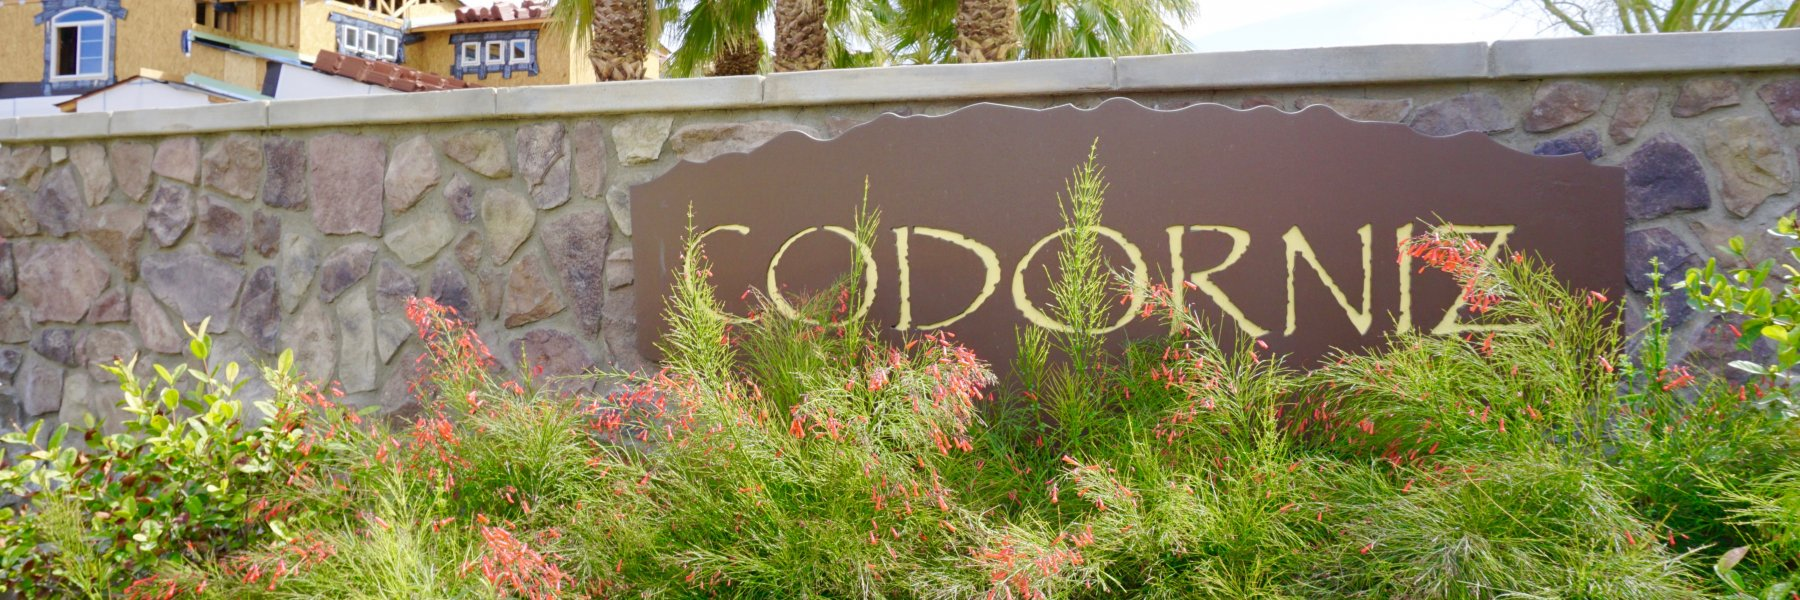 Codorniz is a community of homes in La Quinta California